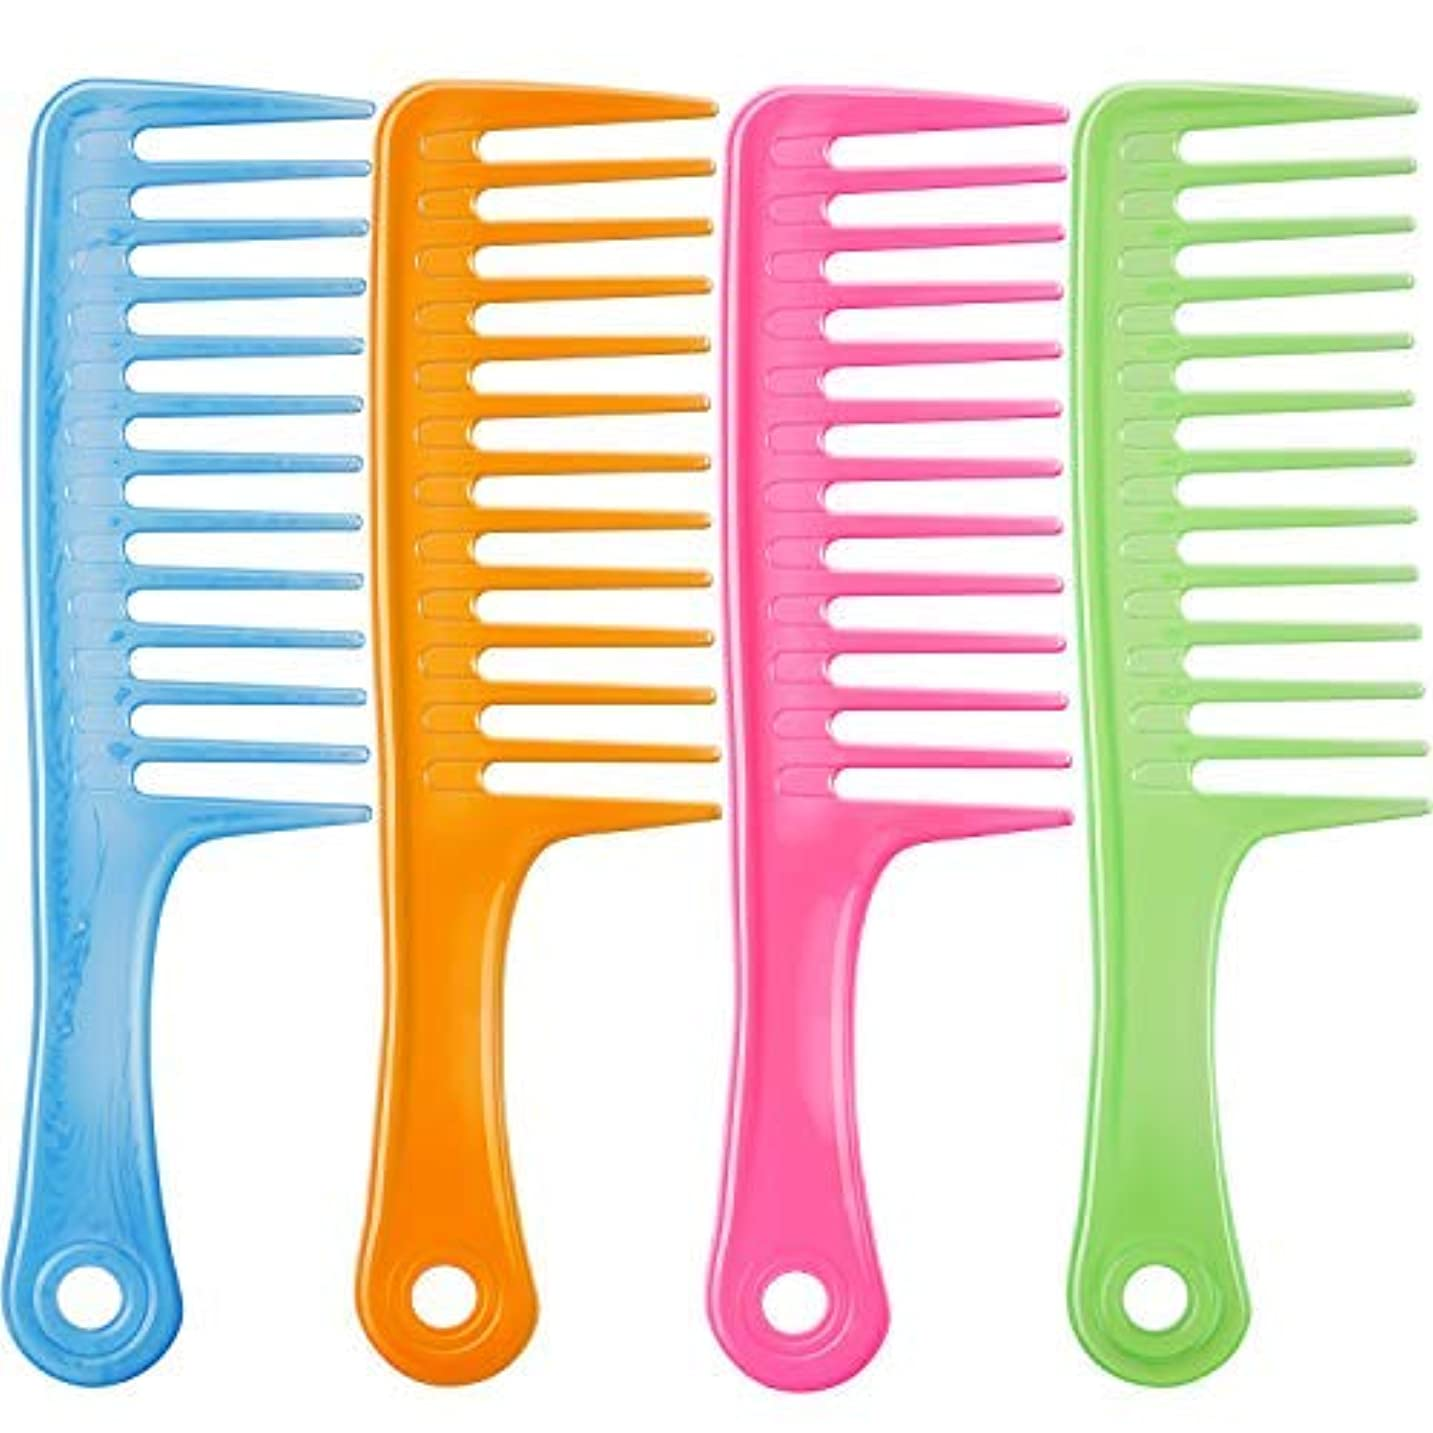 ポット買い手ヘビーTecUnite 4 Pieces 9 1/2 Inches Anti-static Large Tooth Detangle Comb, Wide Tooth Hair Comb Salon Shampoo Comb for Thick Hair Long Hair and Curly Hair (Mutil Color 3) [並行輸入品]